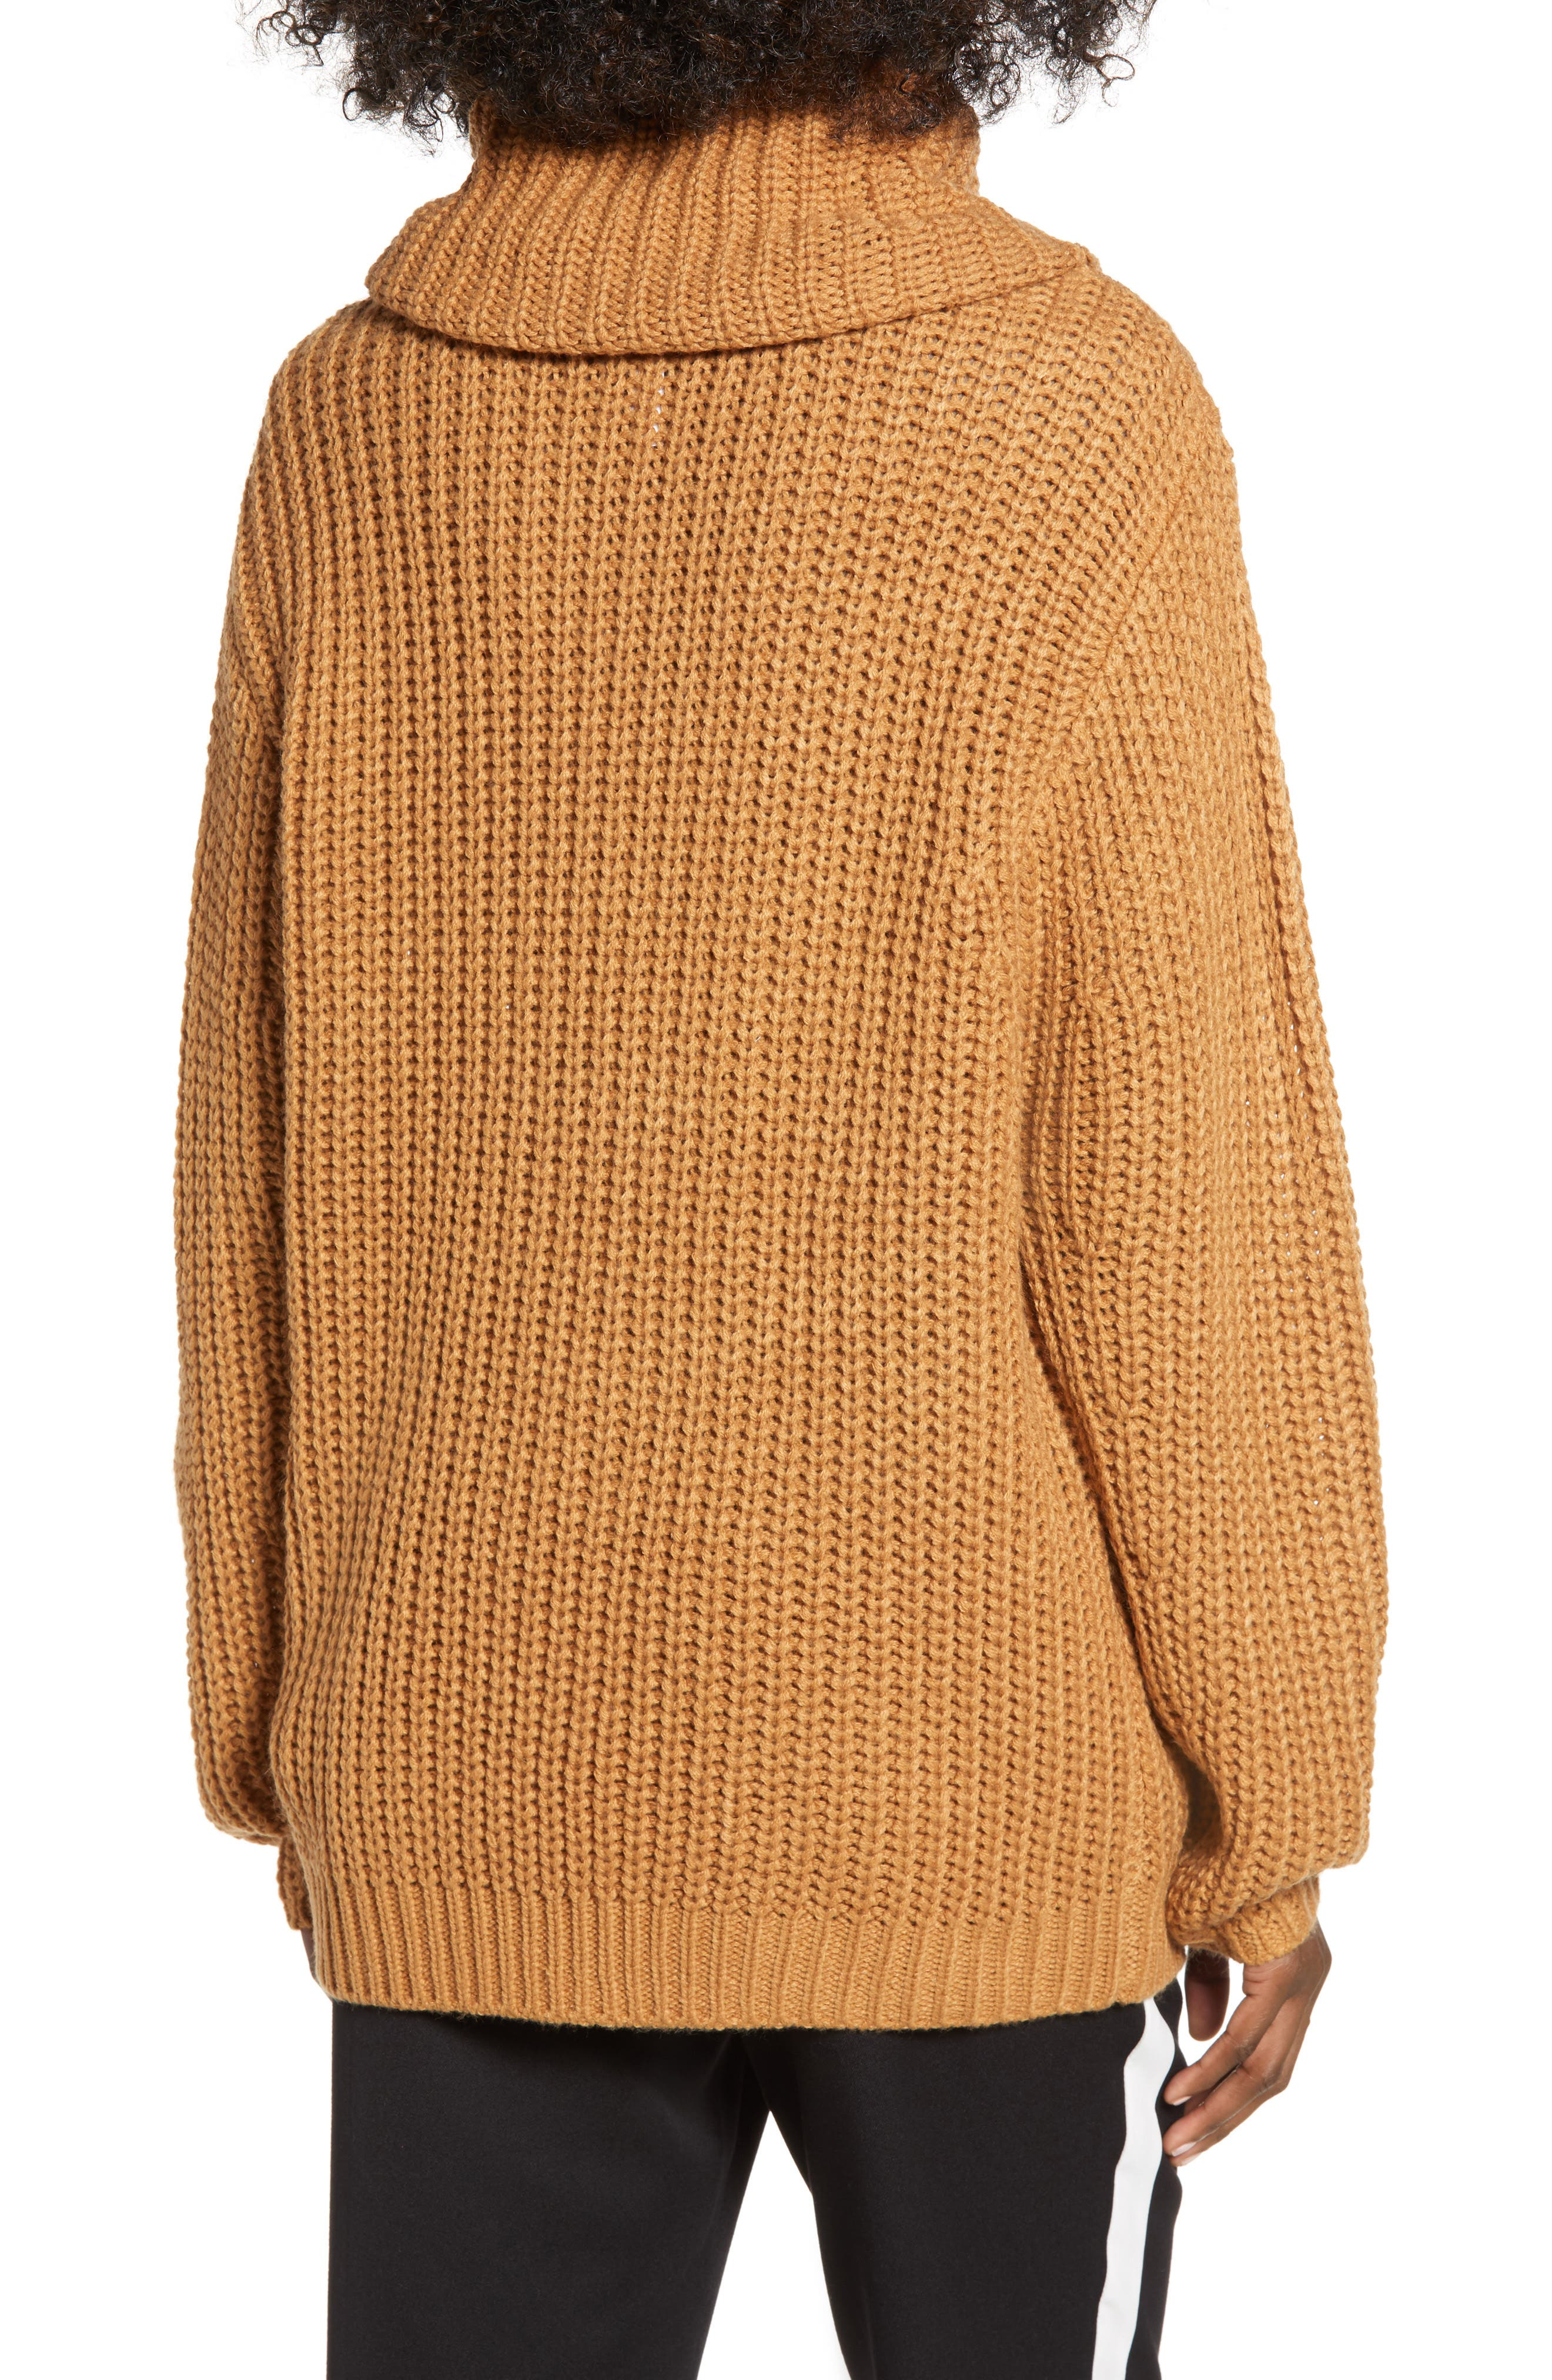 LEITH, Oversize Turtleneck Sweater, Alternate thumbnail 2, color, 235